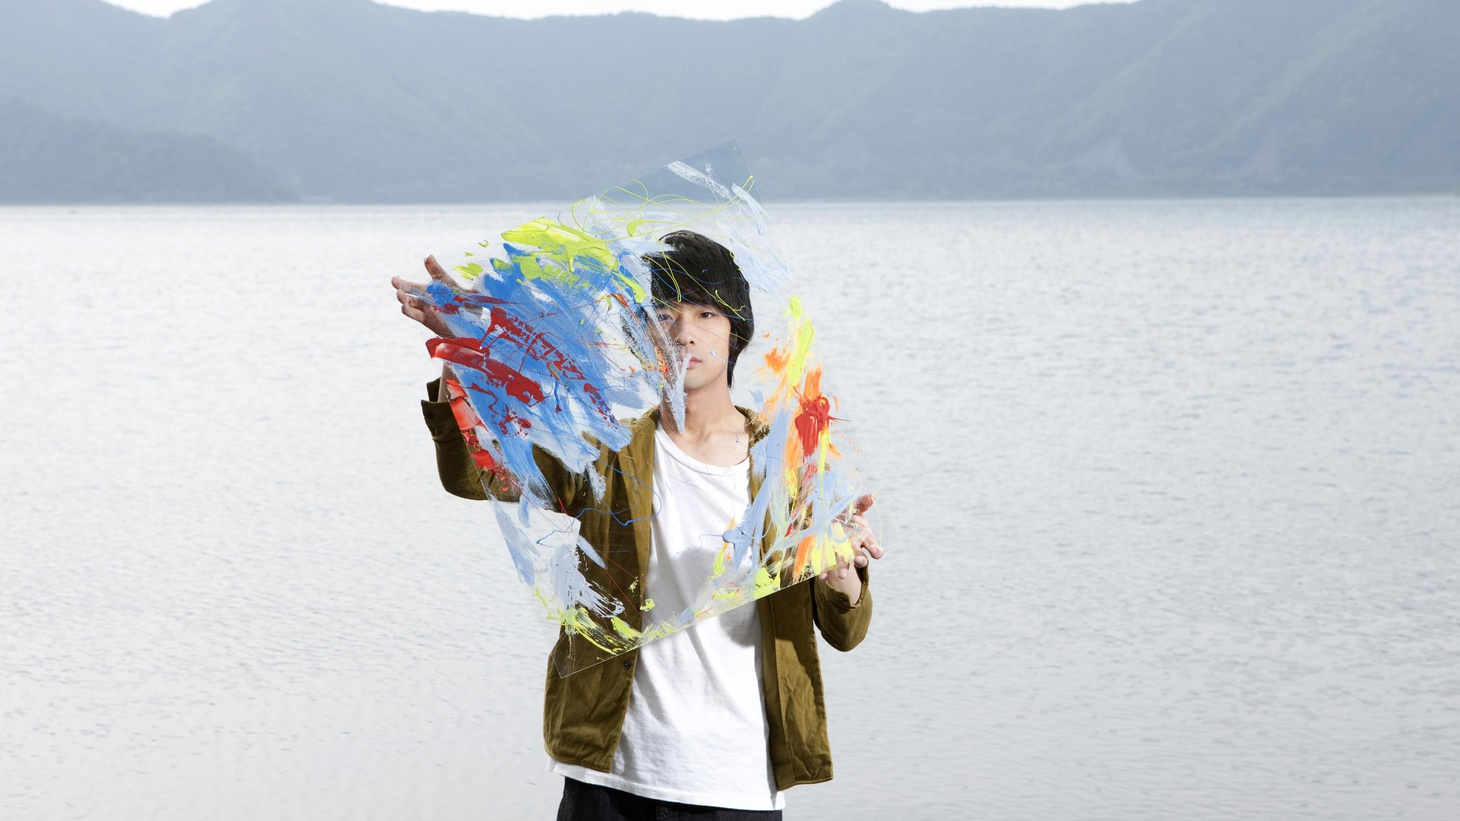 Each song on Japanese multi-instrumentalist Shugo Tokumaru's new CD employs no less than 20 instruments, all of which he performs himself.